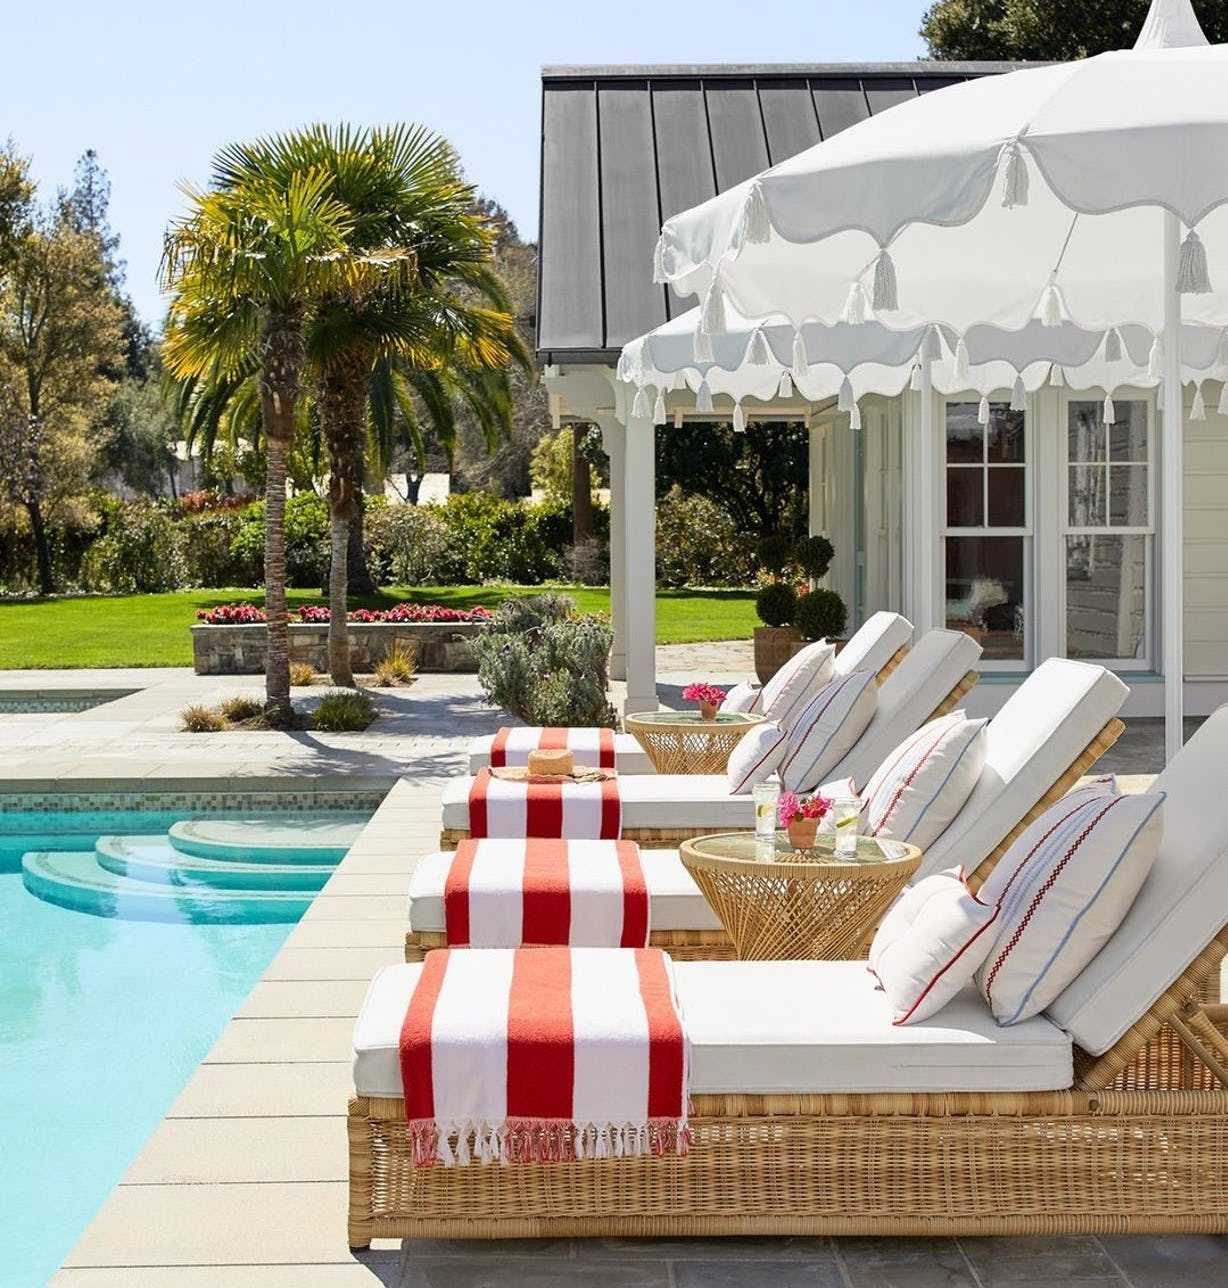 Buying Outdoor Furniture? Designers Say Look To These Brands First